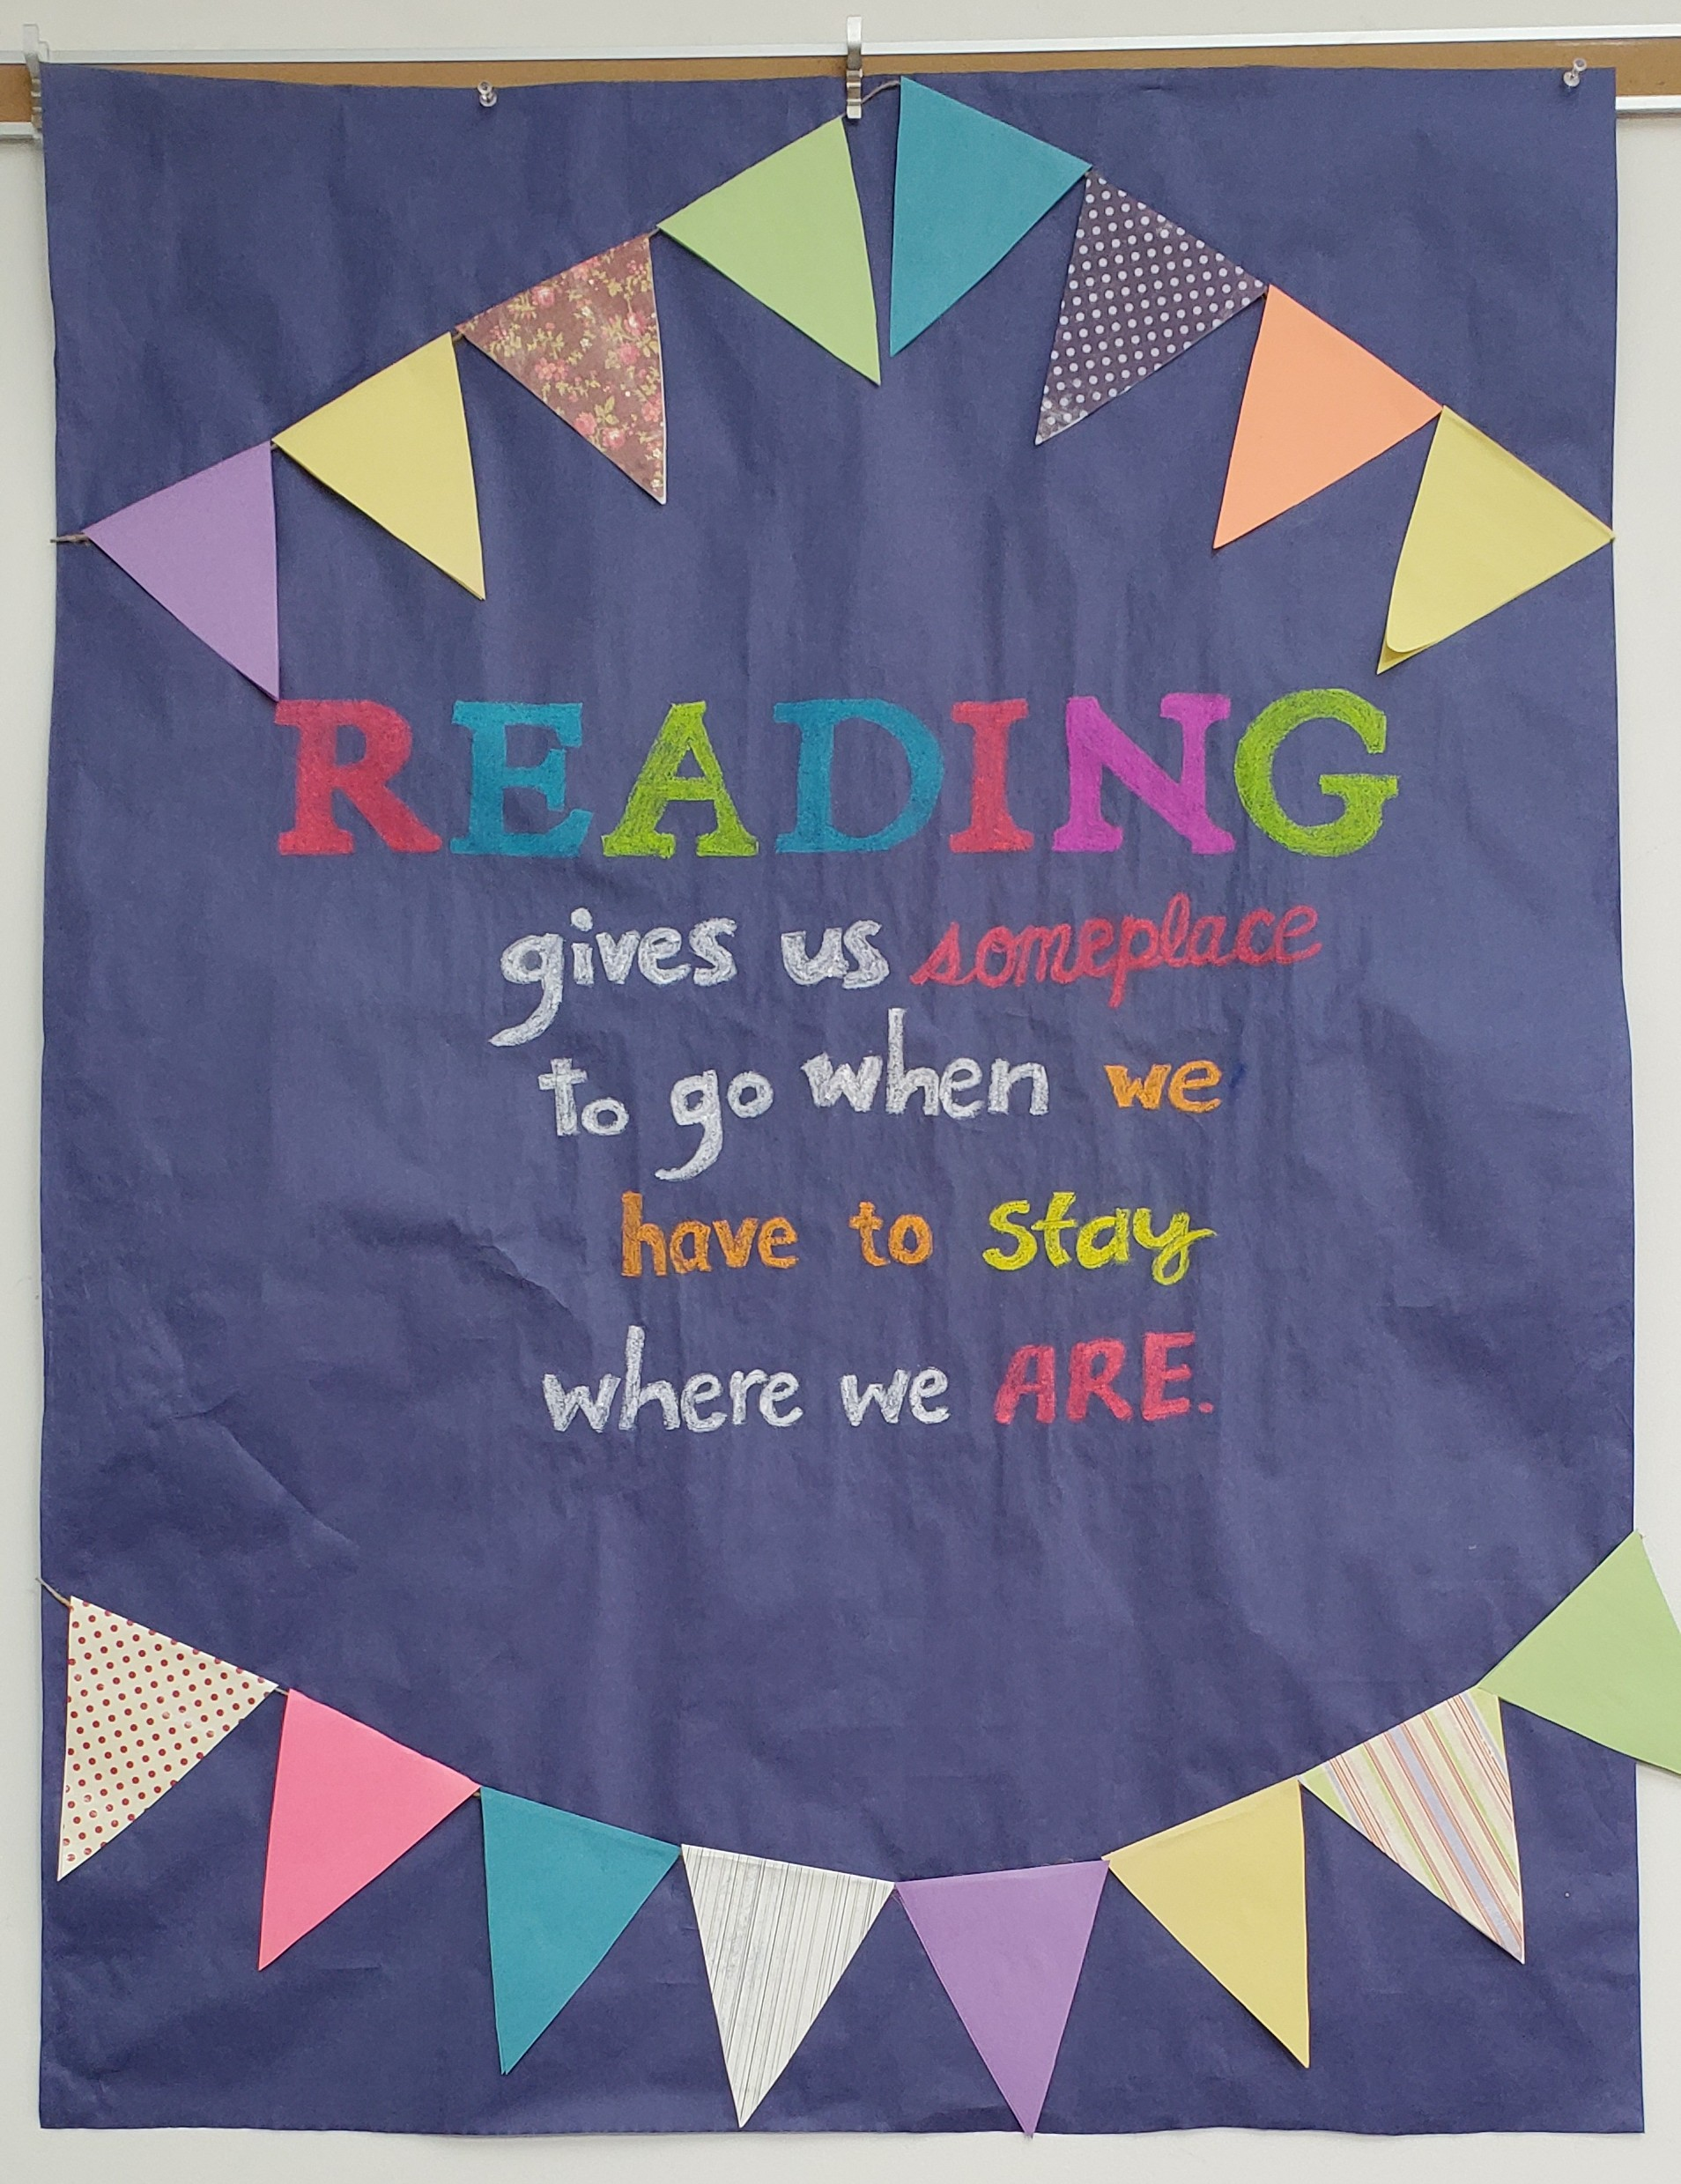 A talented library staff member create this cute display in the library.